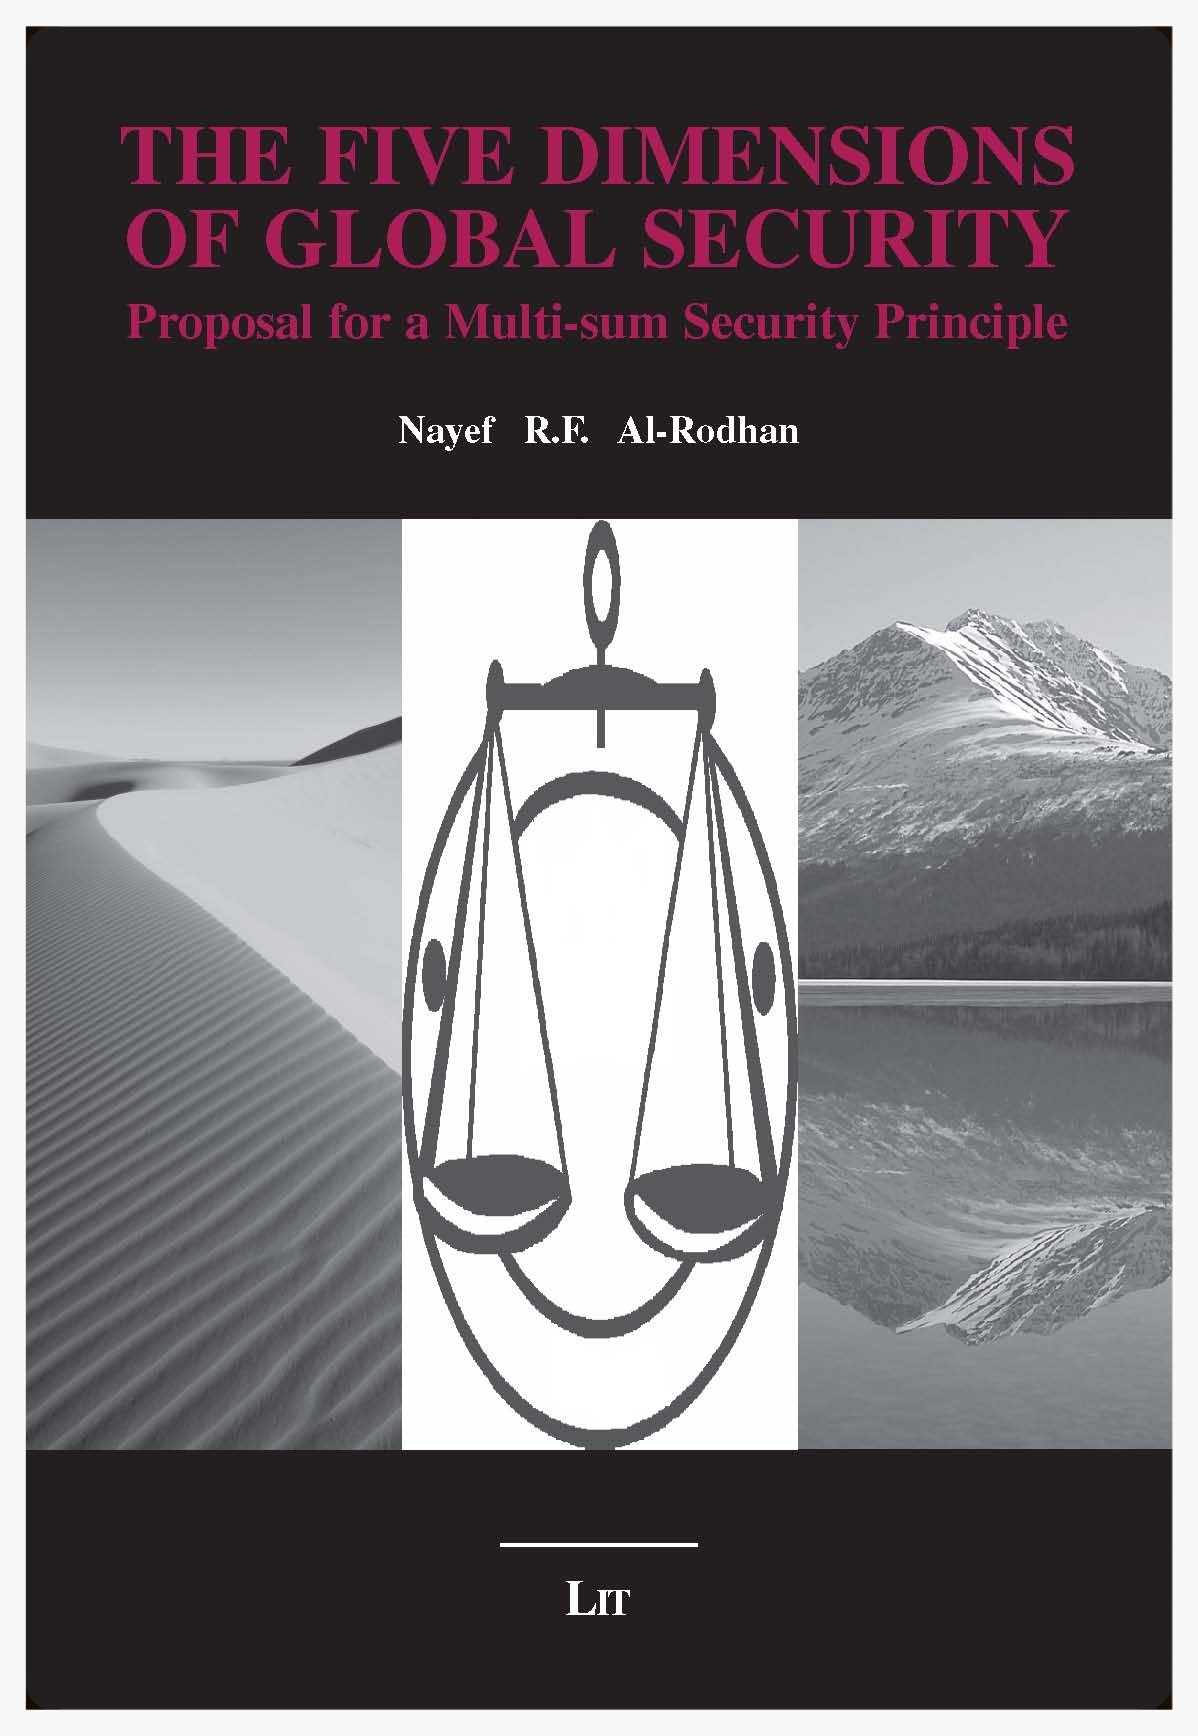 Copy of THE FIVE DIMENSIONS OF GLOBAL SECURITY: Proposal for a Multi-sum Security Principle